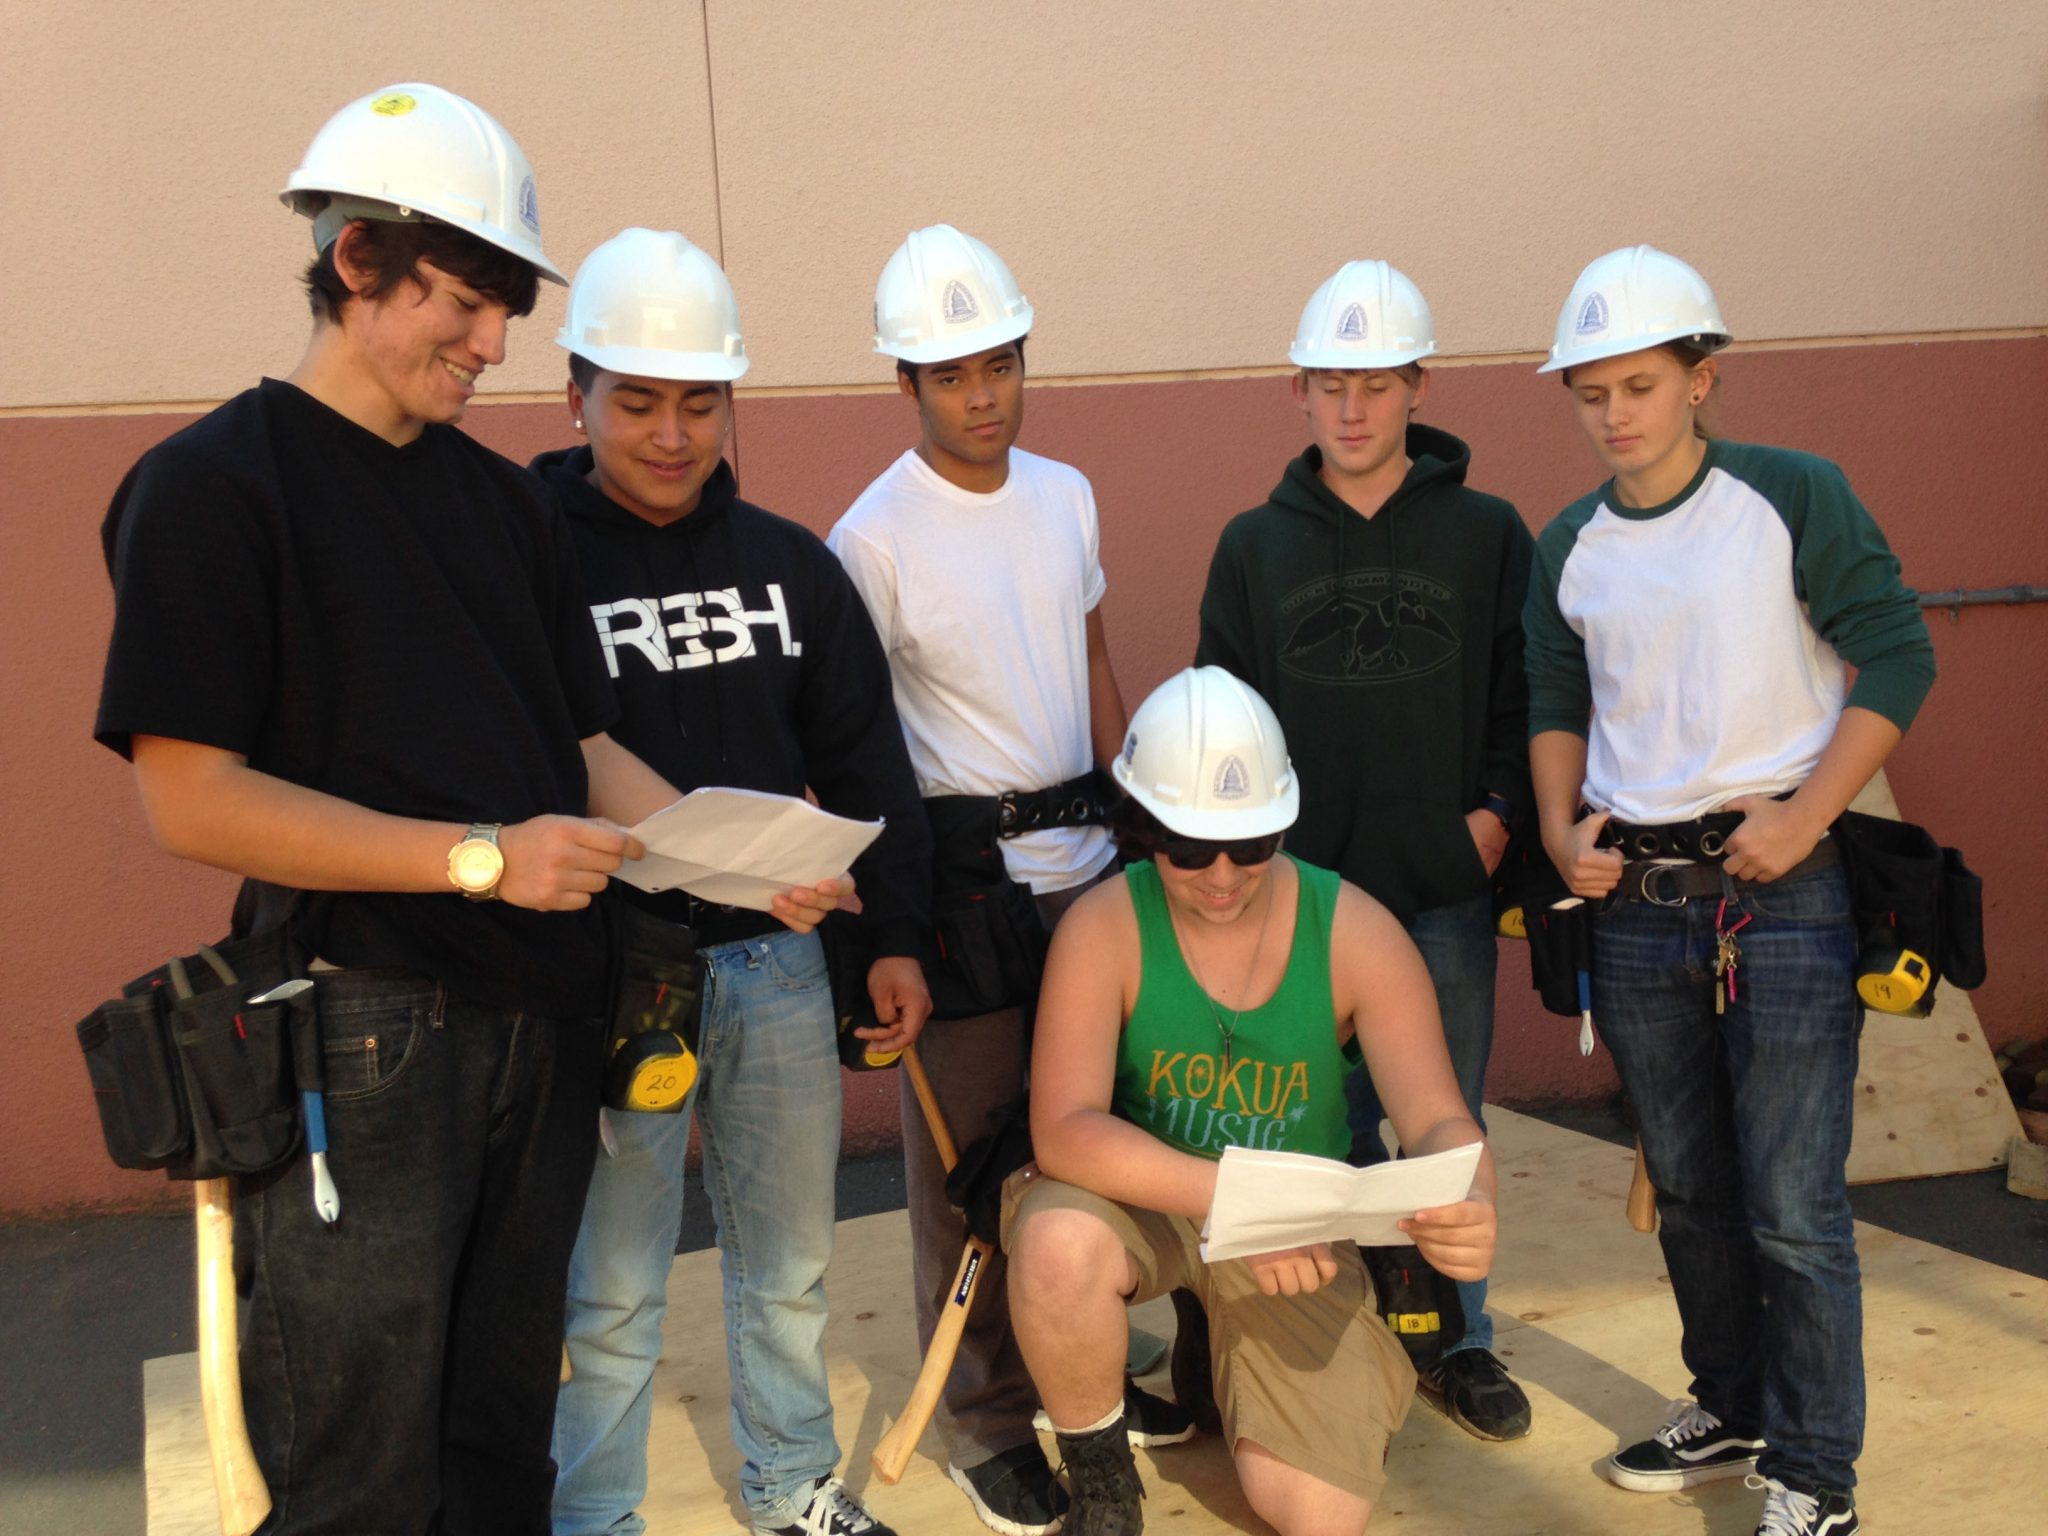 In front is Jack Millson, and in back are, from left, Jhonathan Zamora, Ricky Guerrero, Ricky Lopez, Jared Glemser and Lexi Rosales, of the Alhambra High School class of woodworkers who are checking designs of storage sheds their class will build and sell. (DONNA BETH WEILENMAN / Martinez Tribune)